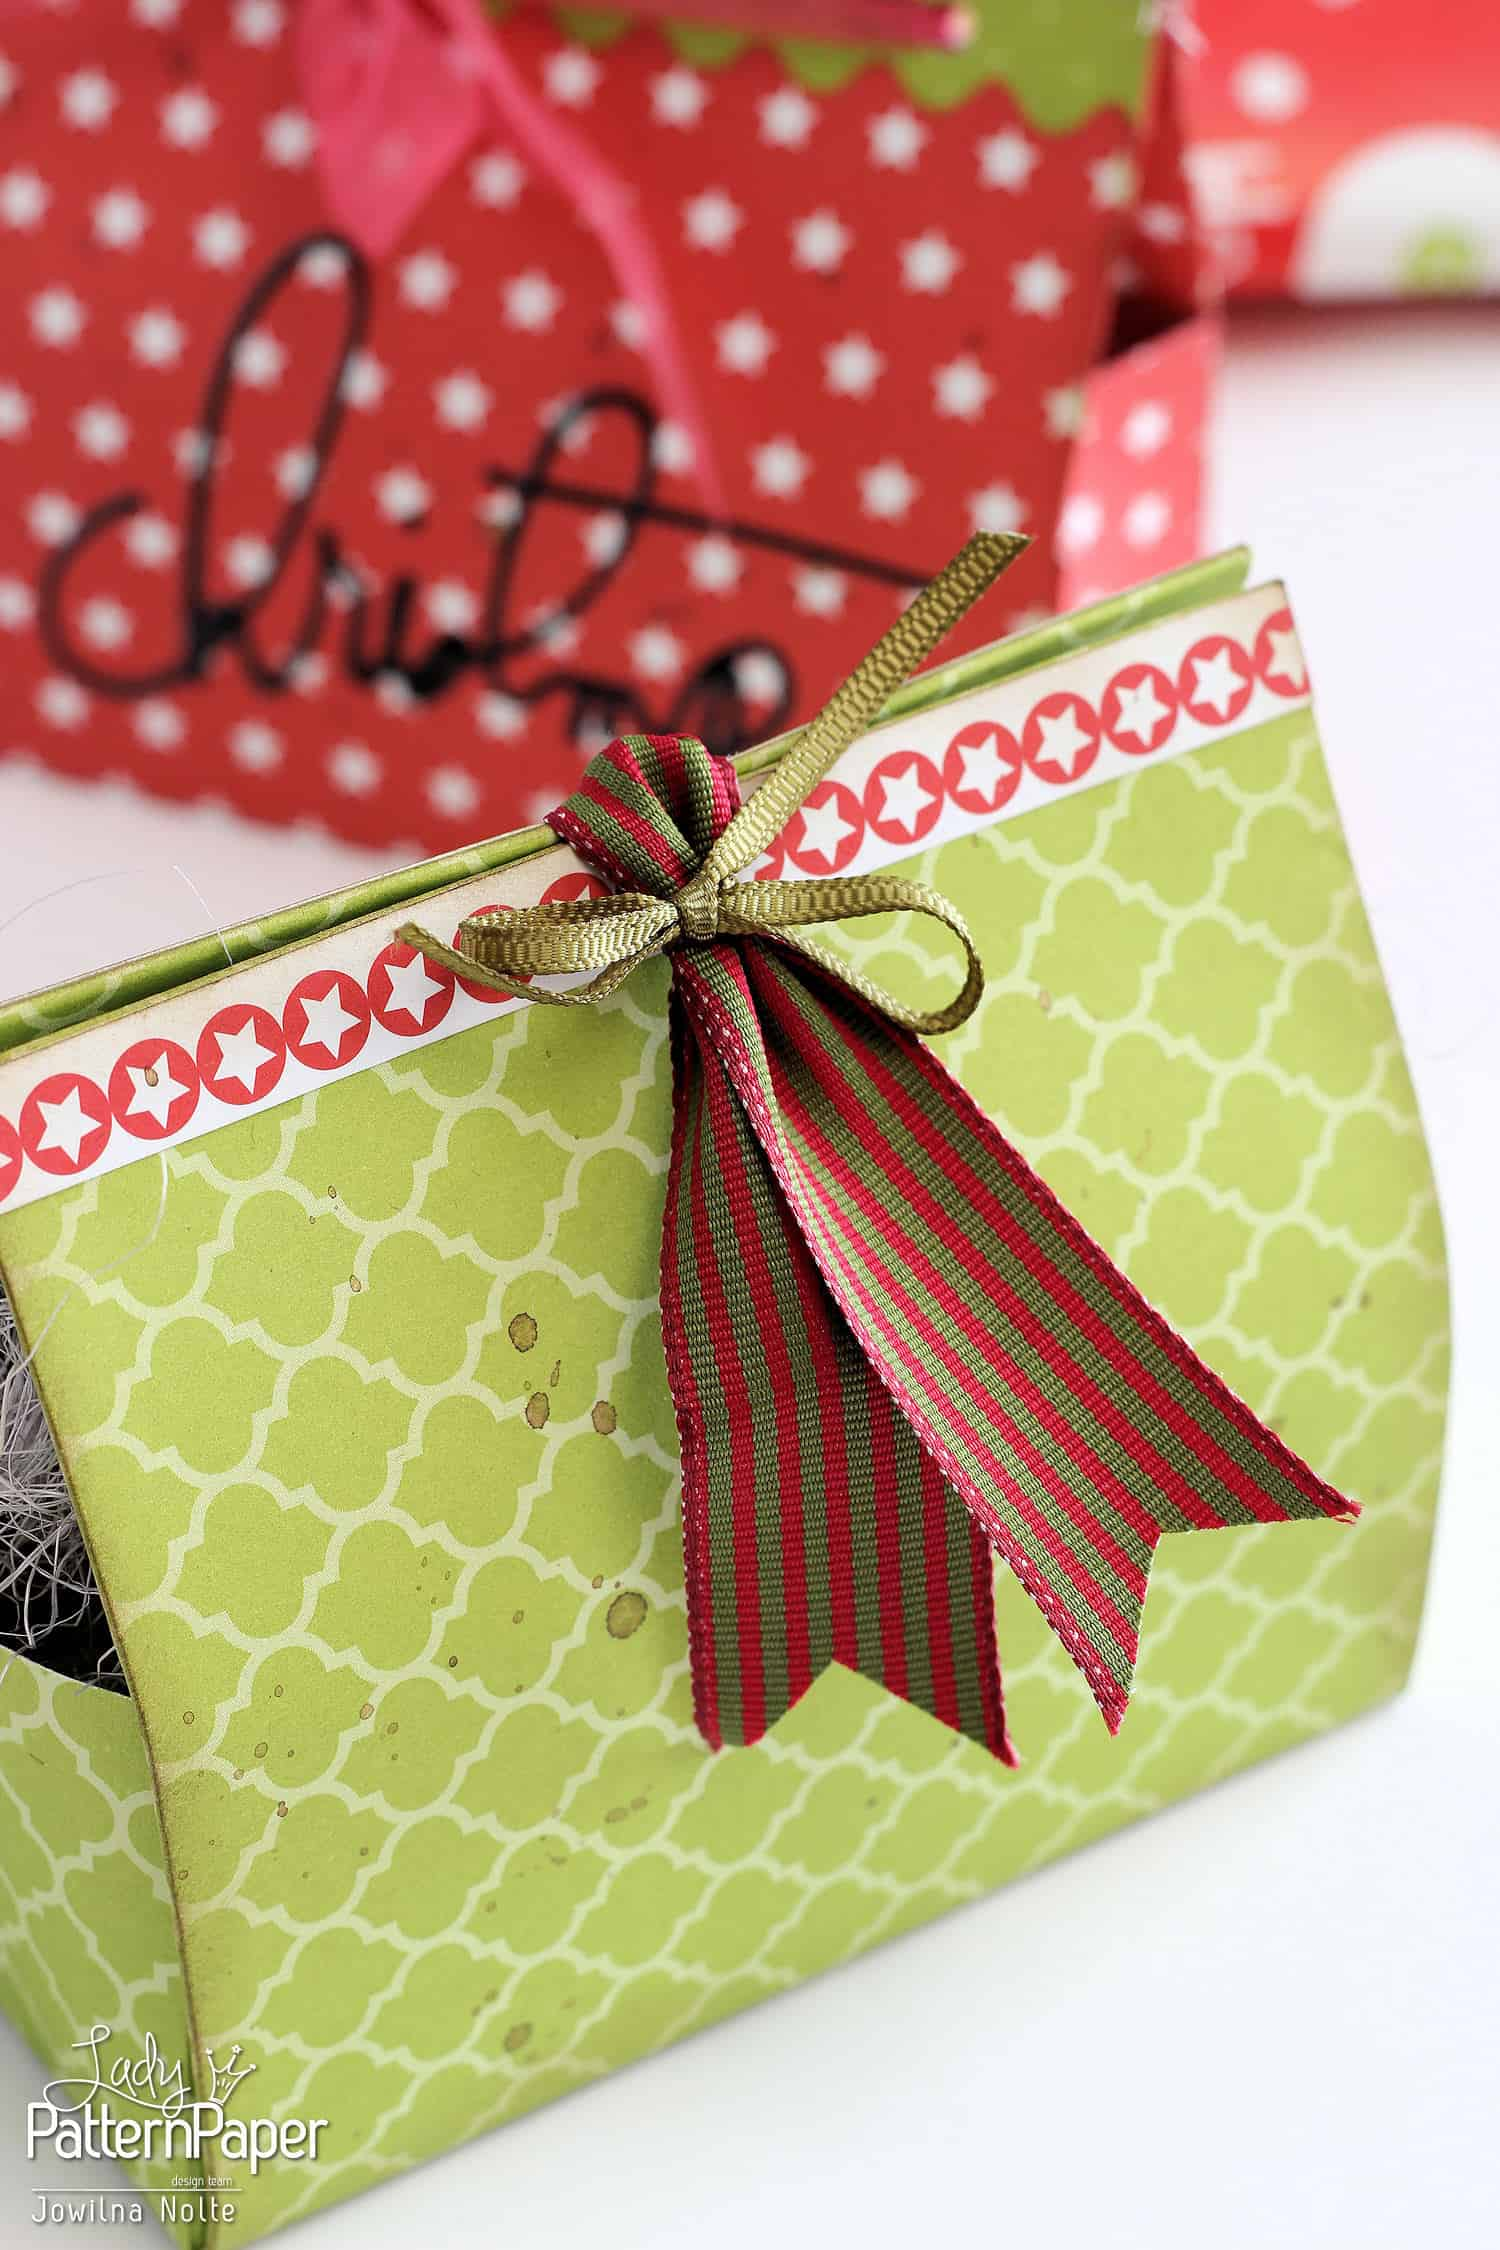 about the gift essay The story the simple gift by steven herrick, focuses on billy, who is a sixteen year old boy living in australia billy reveals himself as a reject, a thief and a troubled character who rejects school.